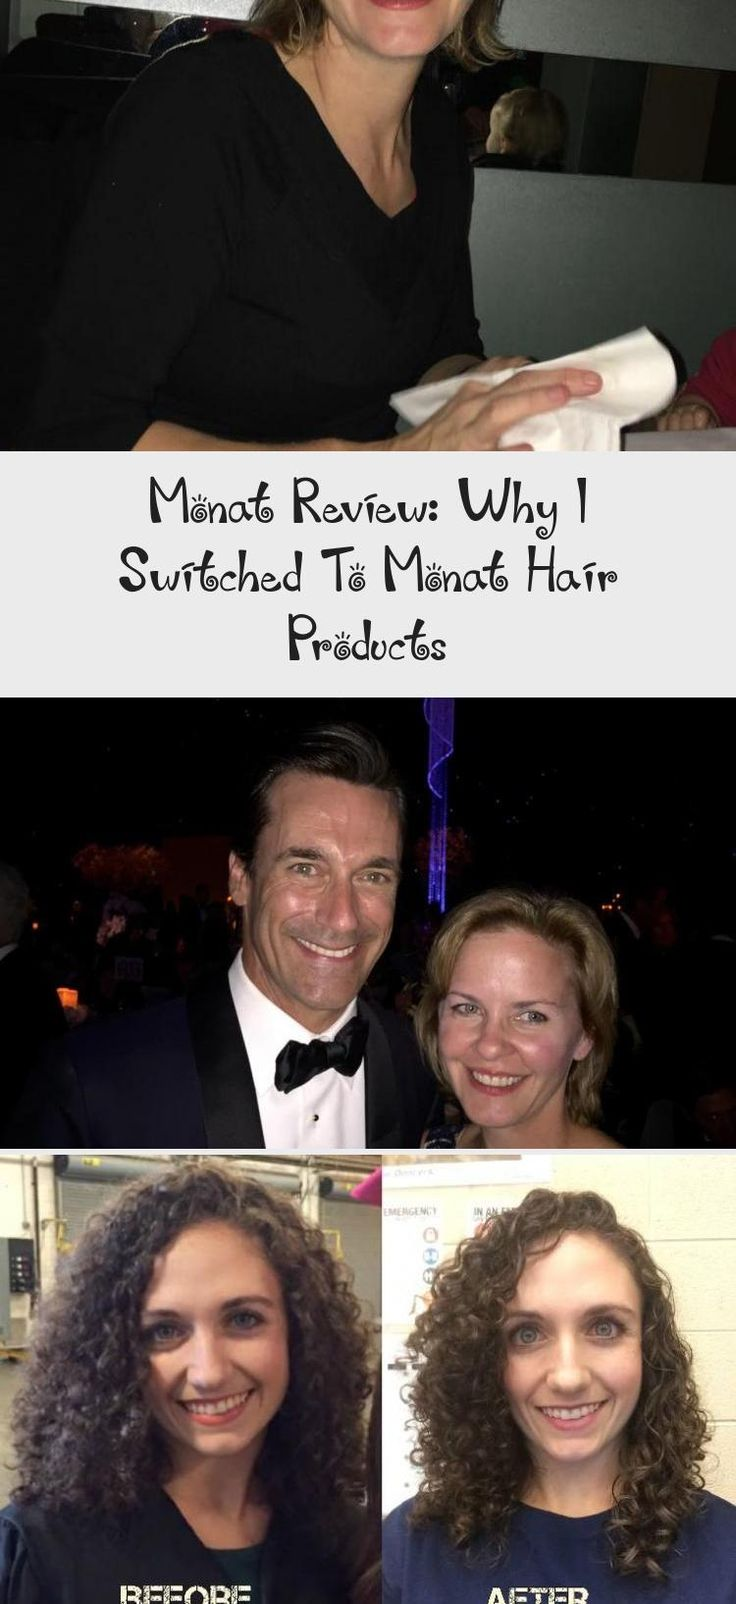 Monat Review Why I Switched To Monat Hair Products in